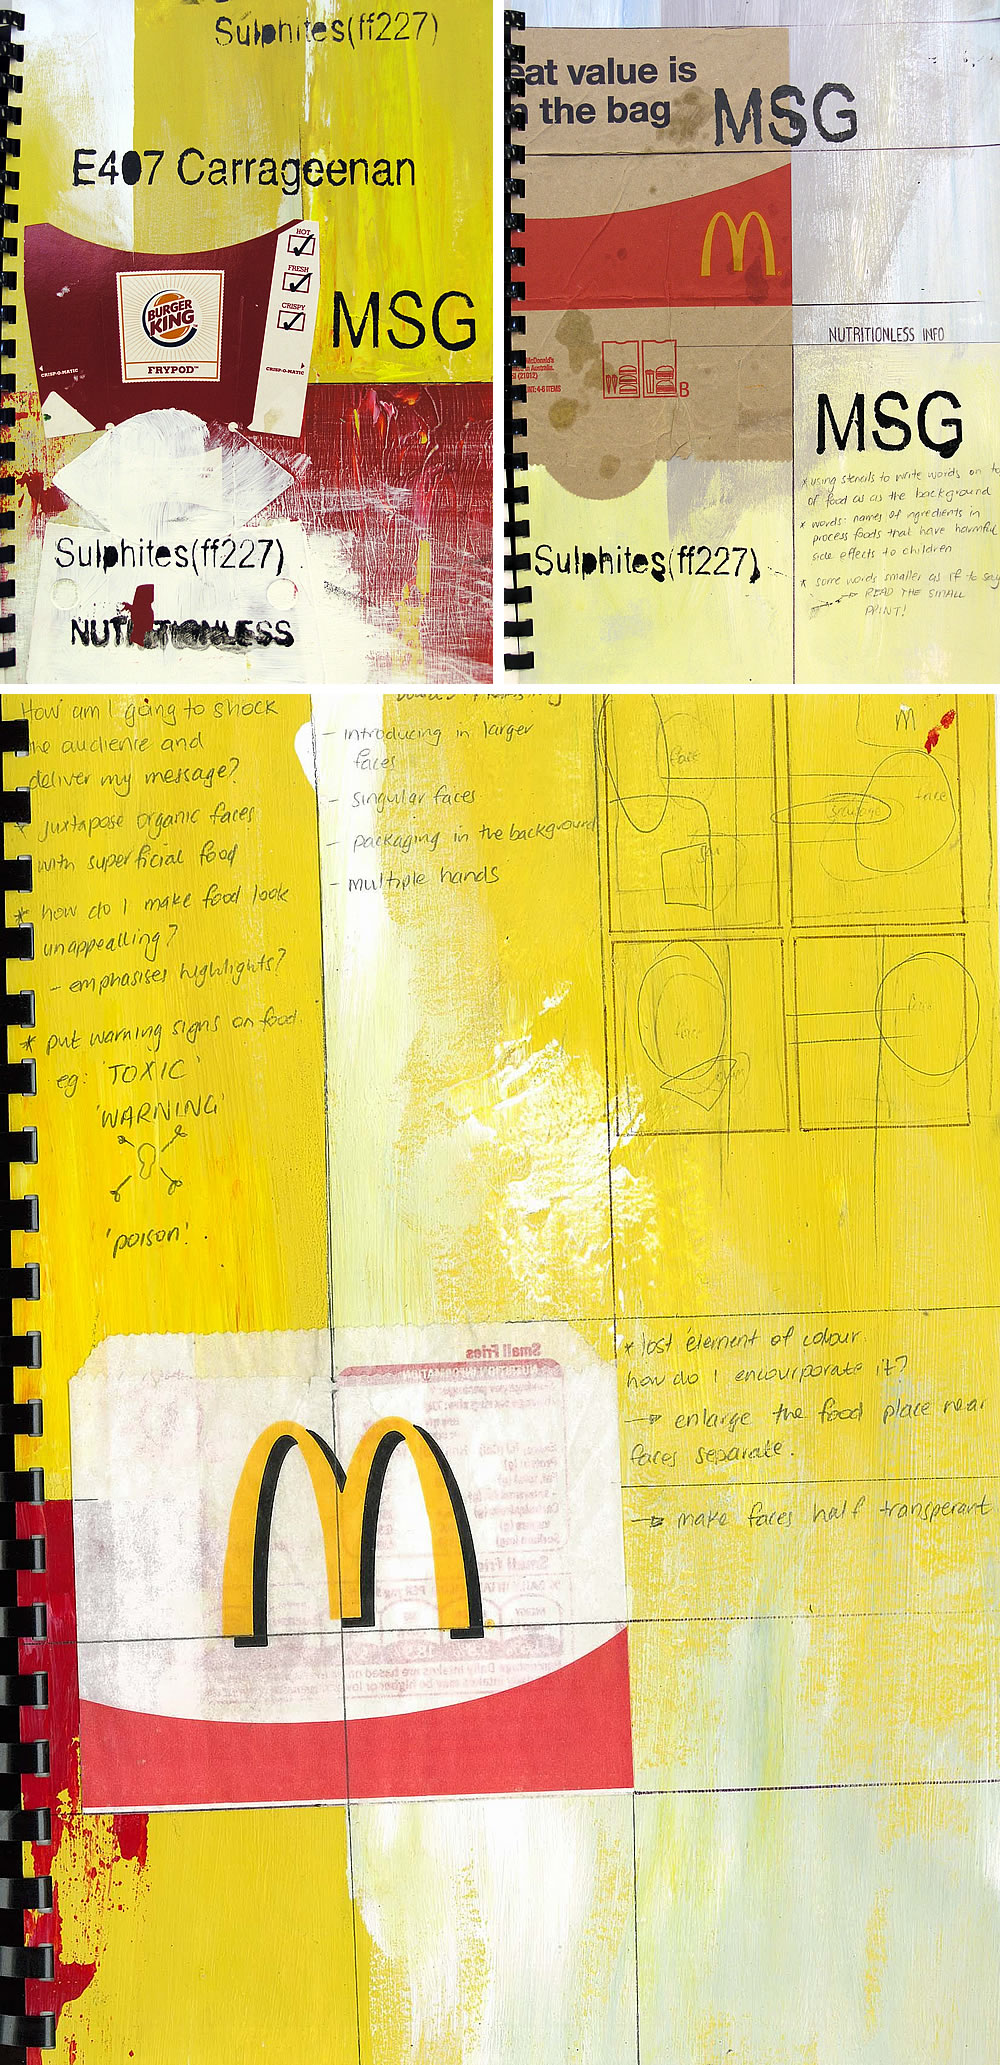 A* Sketchbook project exploring junk food